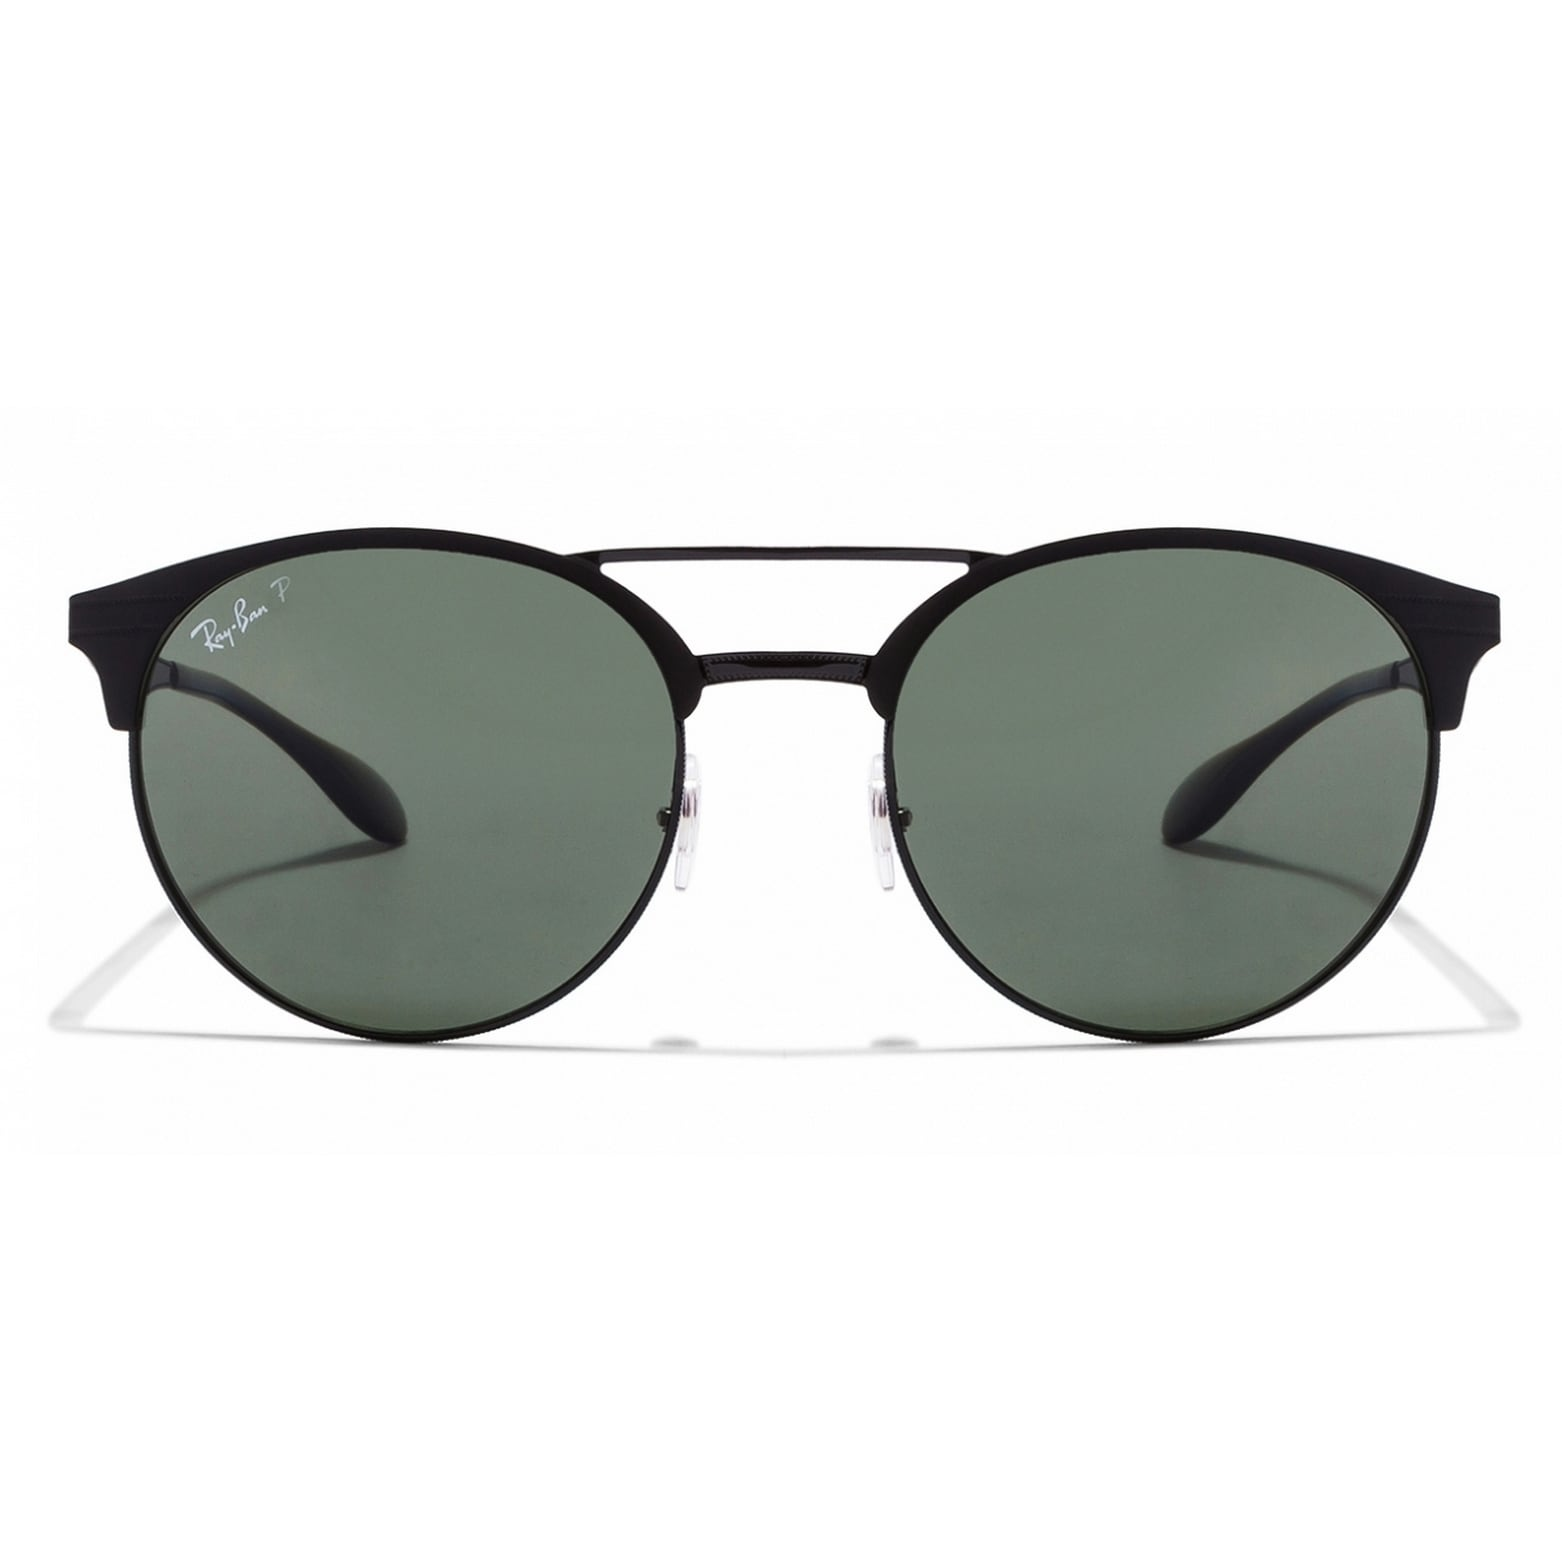 a2194be708 Shop Ray-Ban Unisex RB3545 186 9A 54 Round Metal Plastic Black Green  Sunglasses - Free Shipping Today - Overstock.com - 14602328